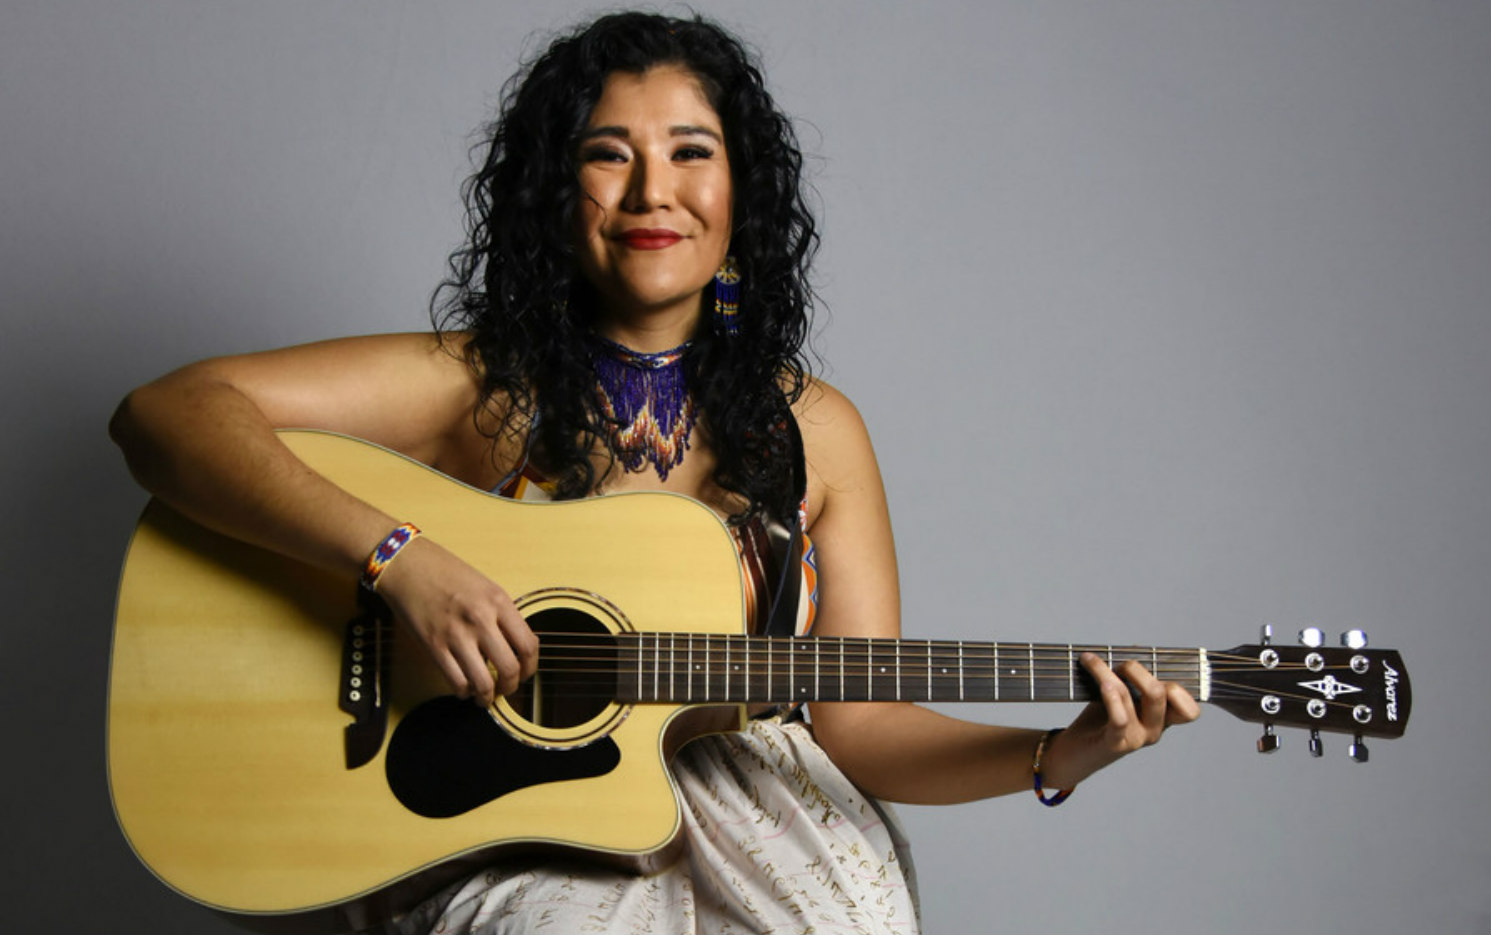 Photo of Tanaya Winder, a Black Indigenous musician and artist, wearing a tiered beaded necklace, sitting and smiling while holder her guitar